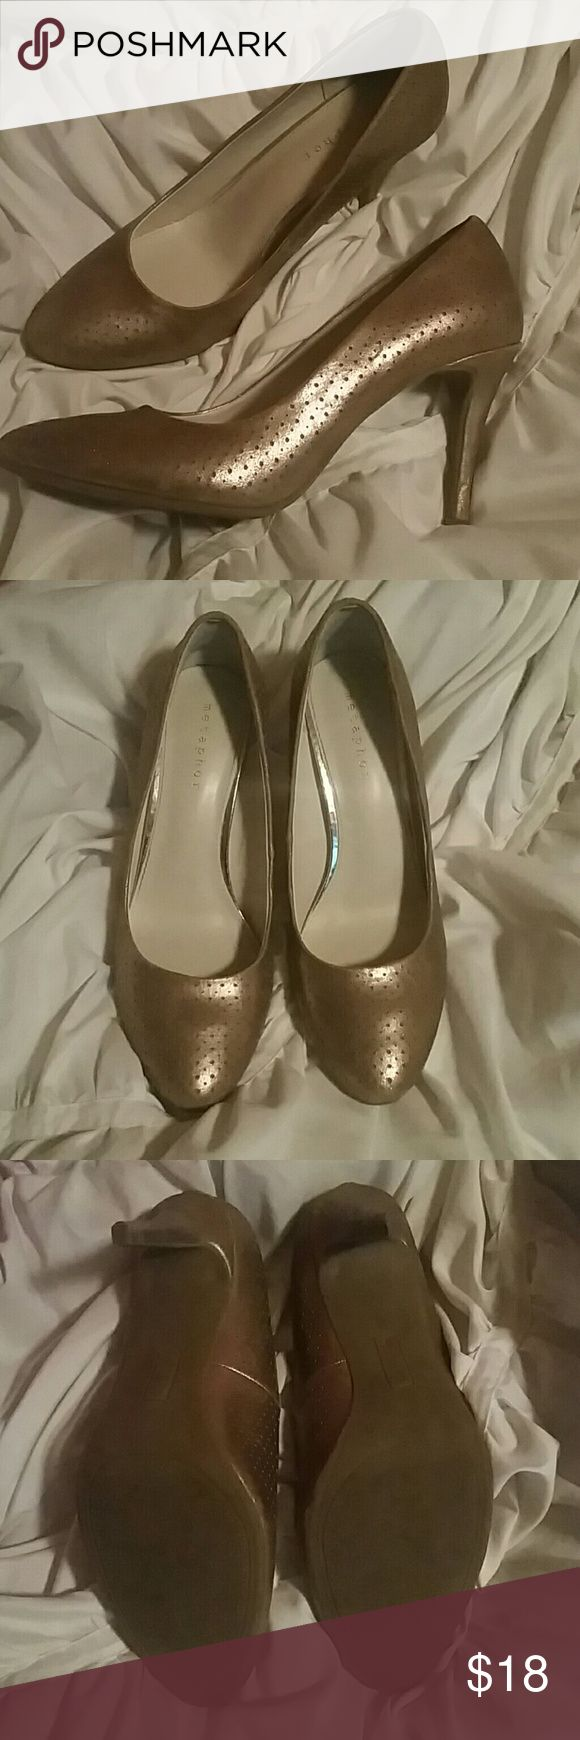 Gold Pumps Metaphor gold pumps. Gently used. Imperfections shown in pictures. Metaphor Shoes Heels